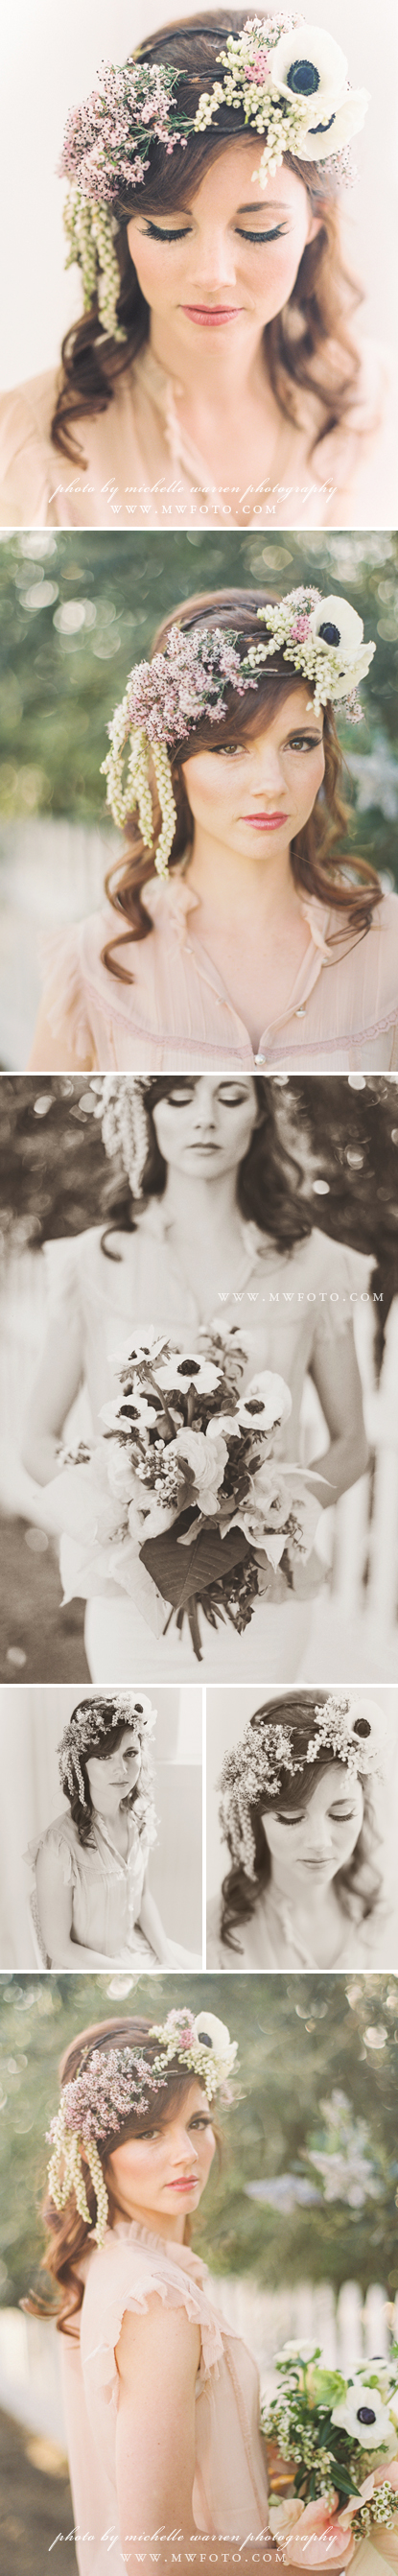 bridal floral headpiece - san luis obispo florist - adornments flowers & finery